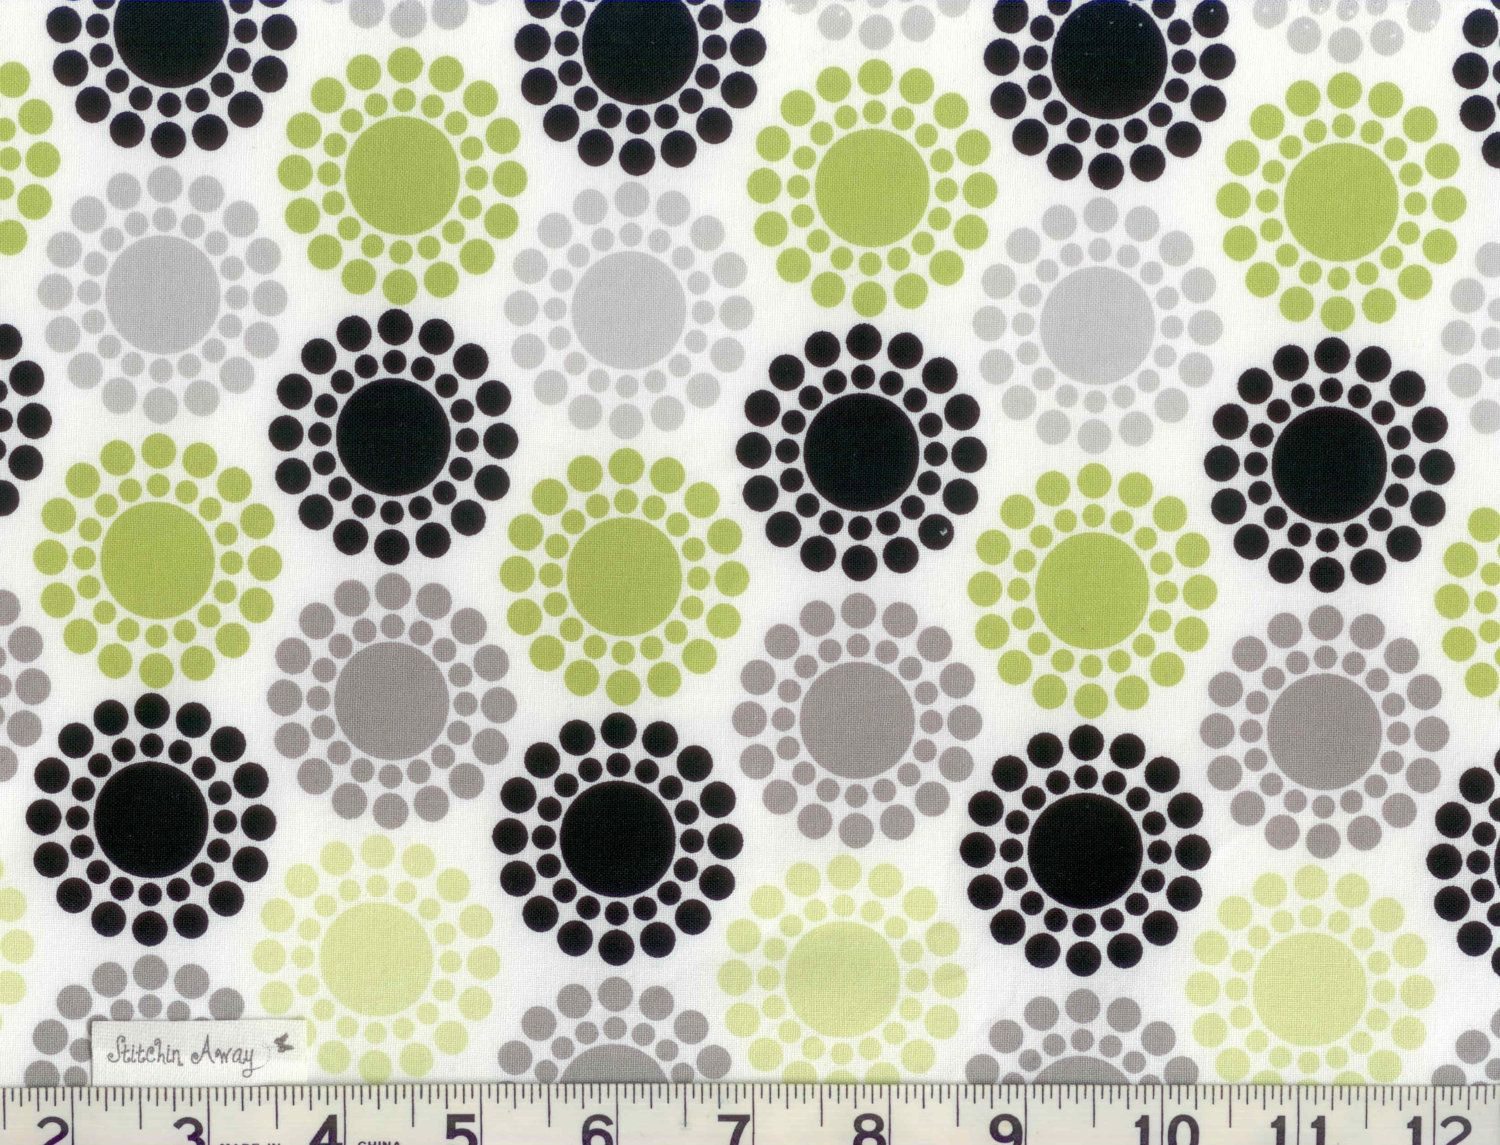 Black Lime Green White And Gray Circles And Polka Dots